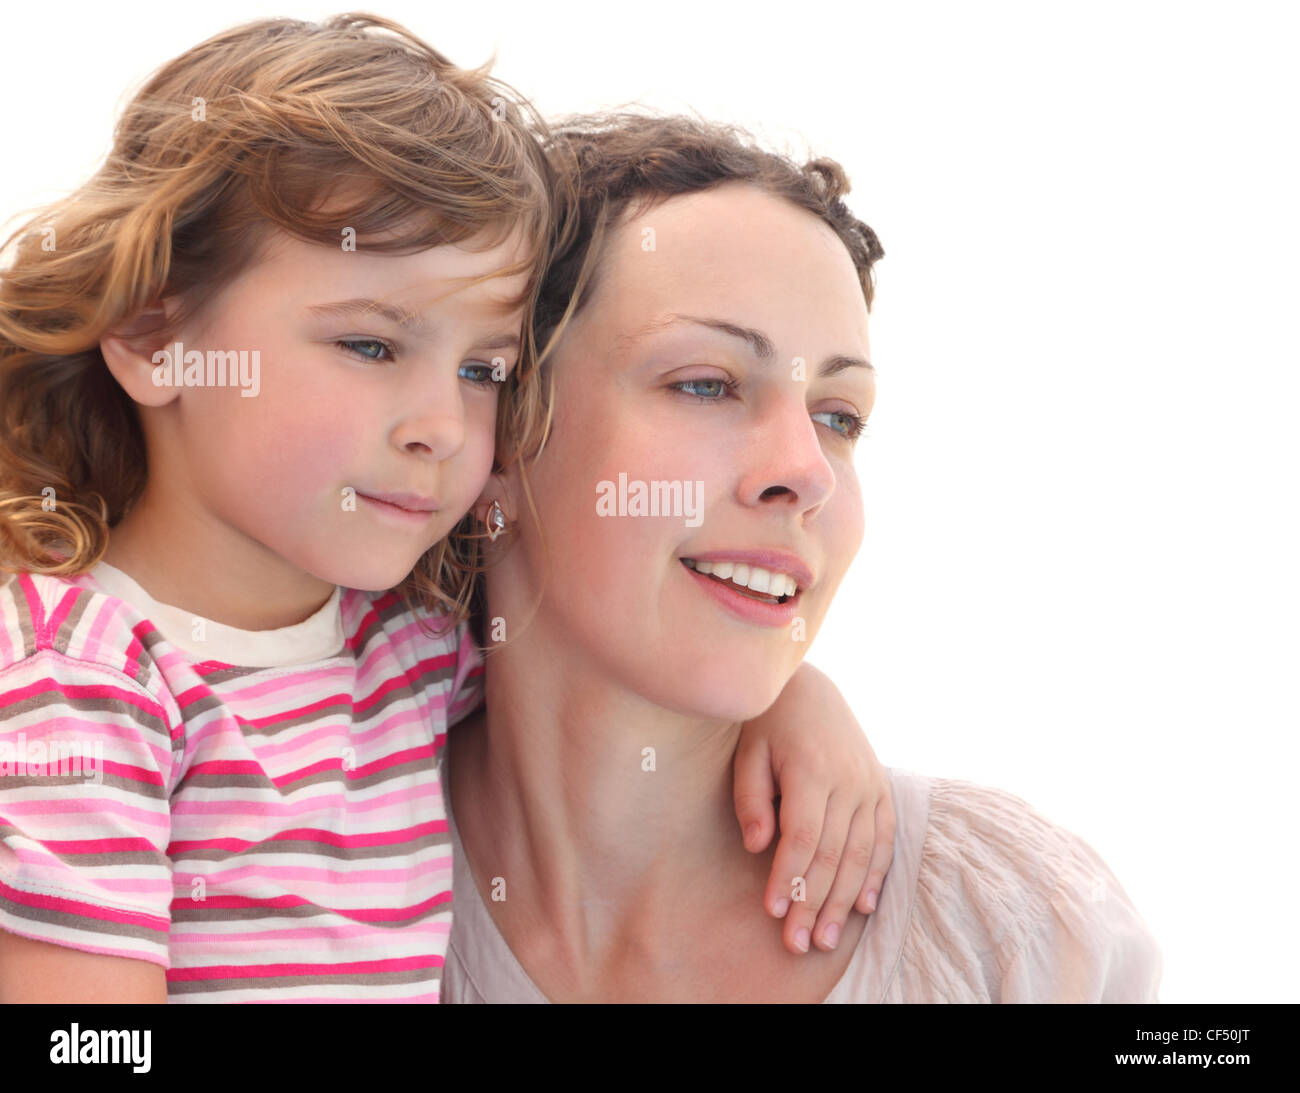 portrait of little girl embracing her mother, half body, isolated on white - Stock Image